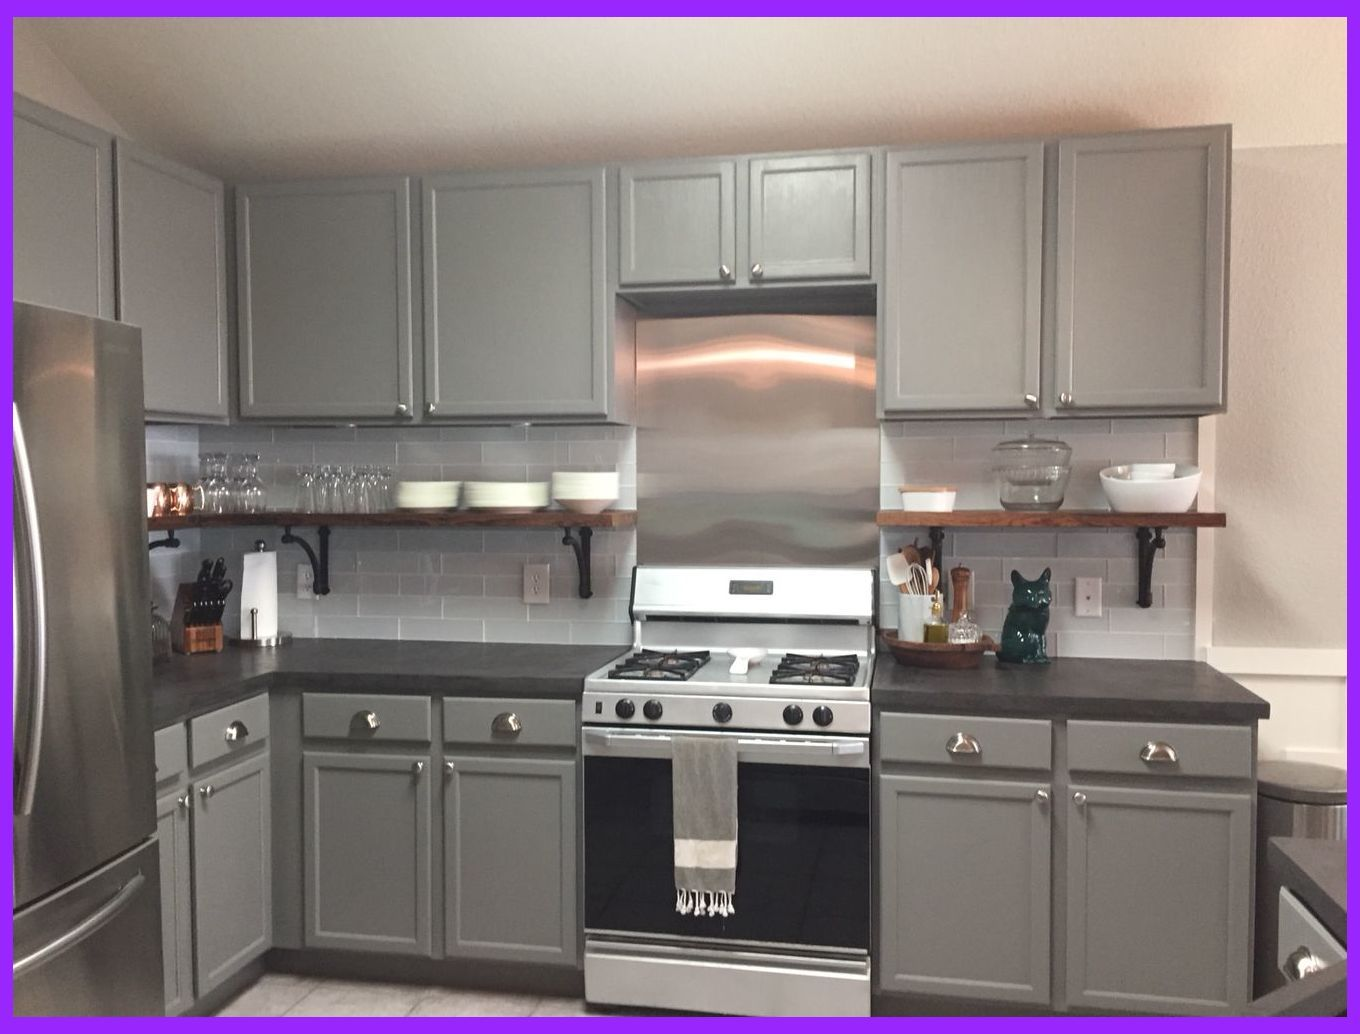 Pros And Cons Of Stainless Steel Backsplash Kitchen Decor Tips Stainless Steel Backsplash Stainless Steel Tile Backsplash Stainless Backsplash